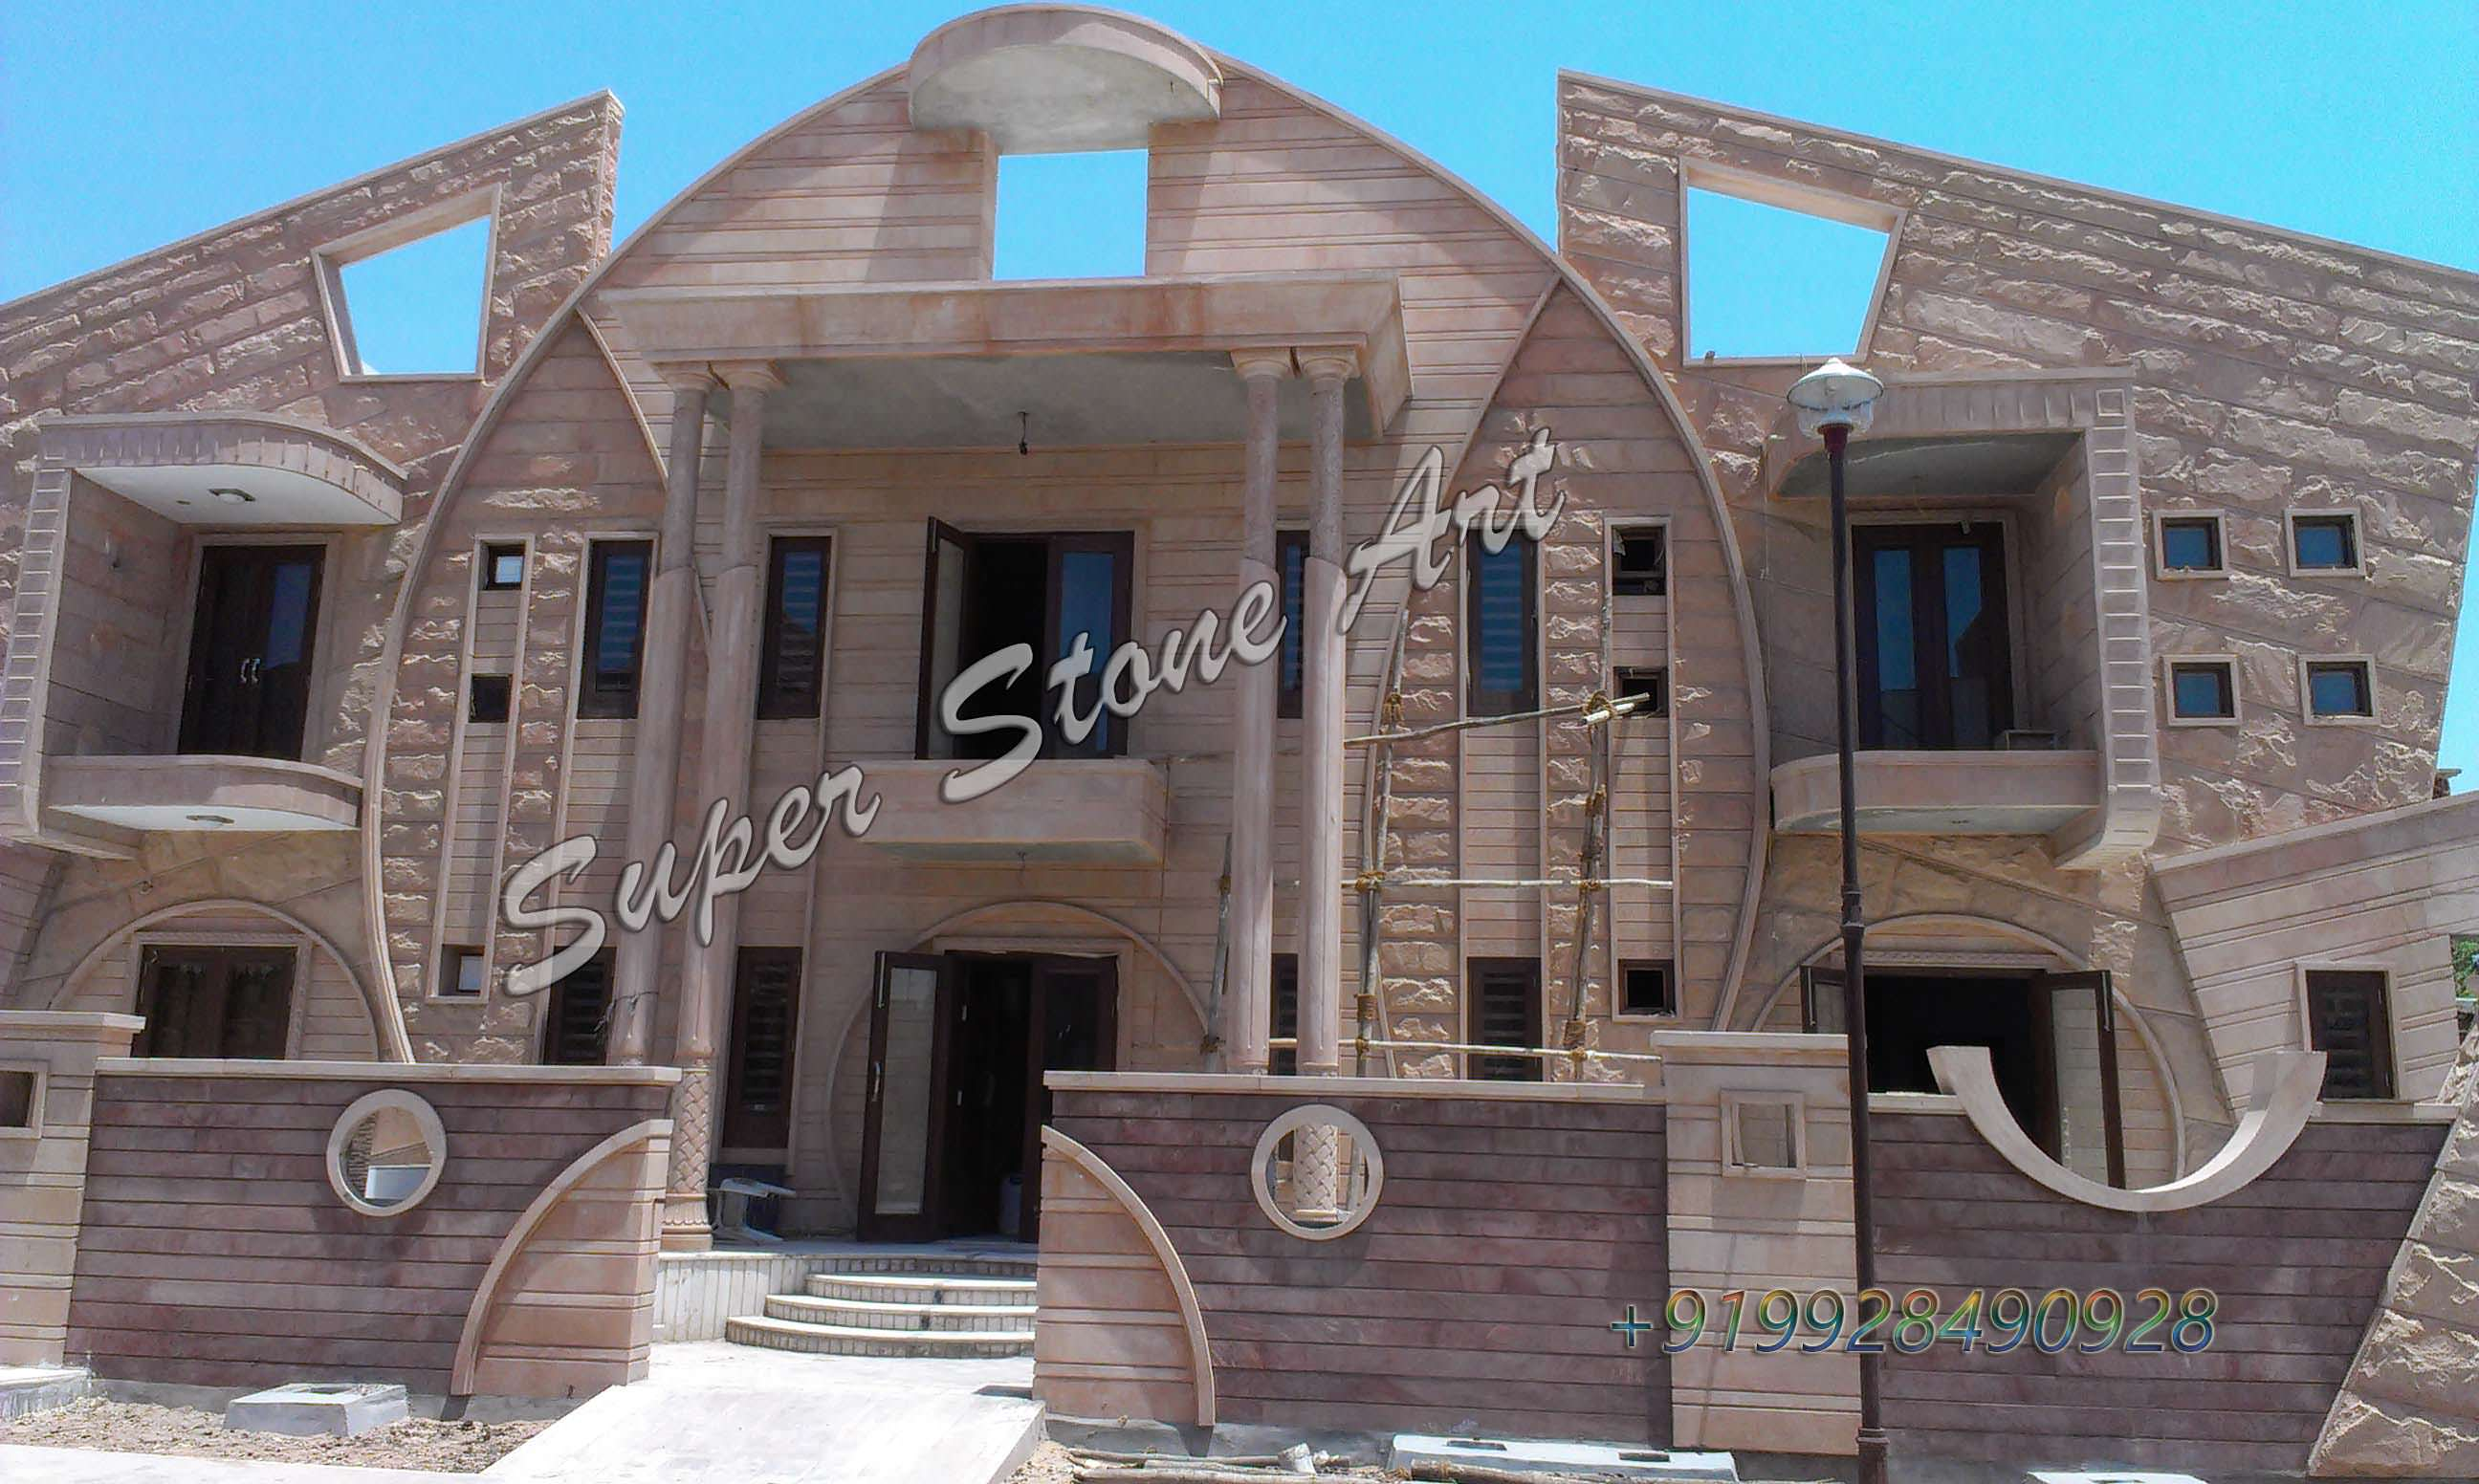 Jodhpur stone elevation deign stone supplier decorative stone jodhpur stone jodhpur sandstone